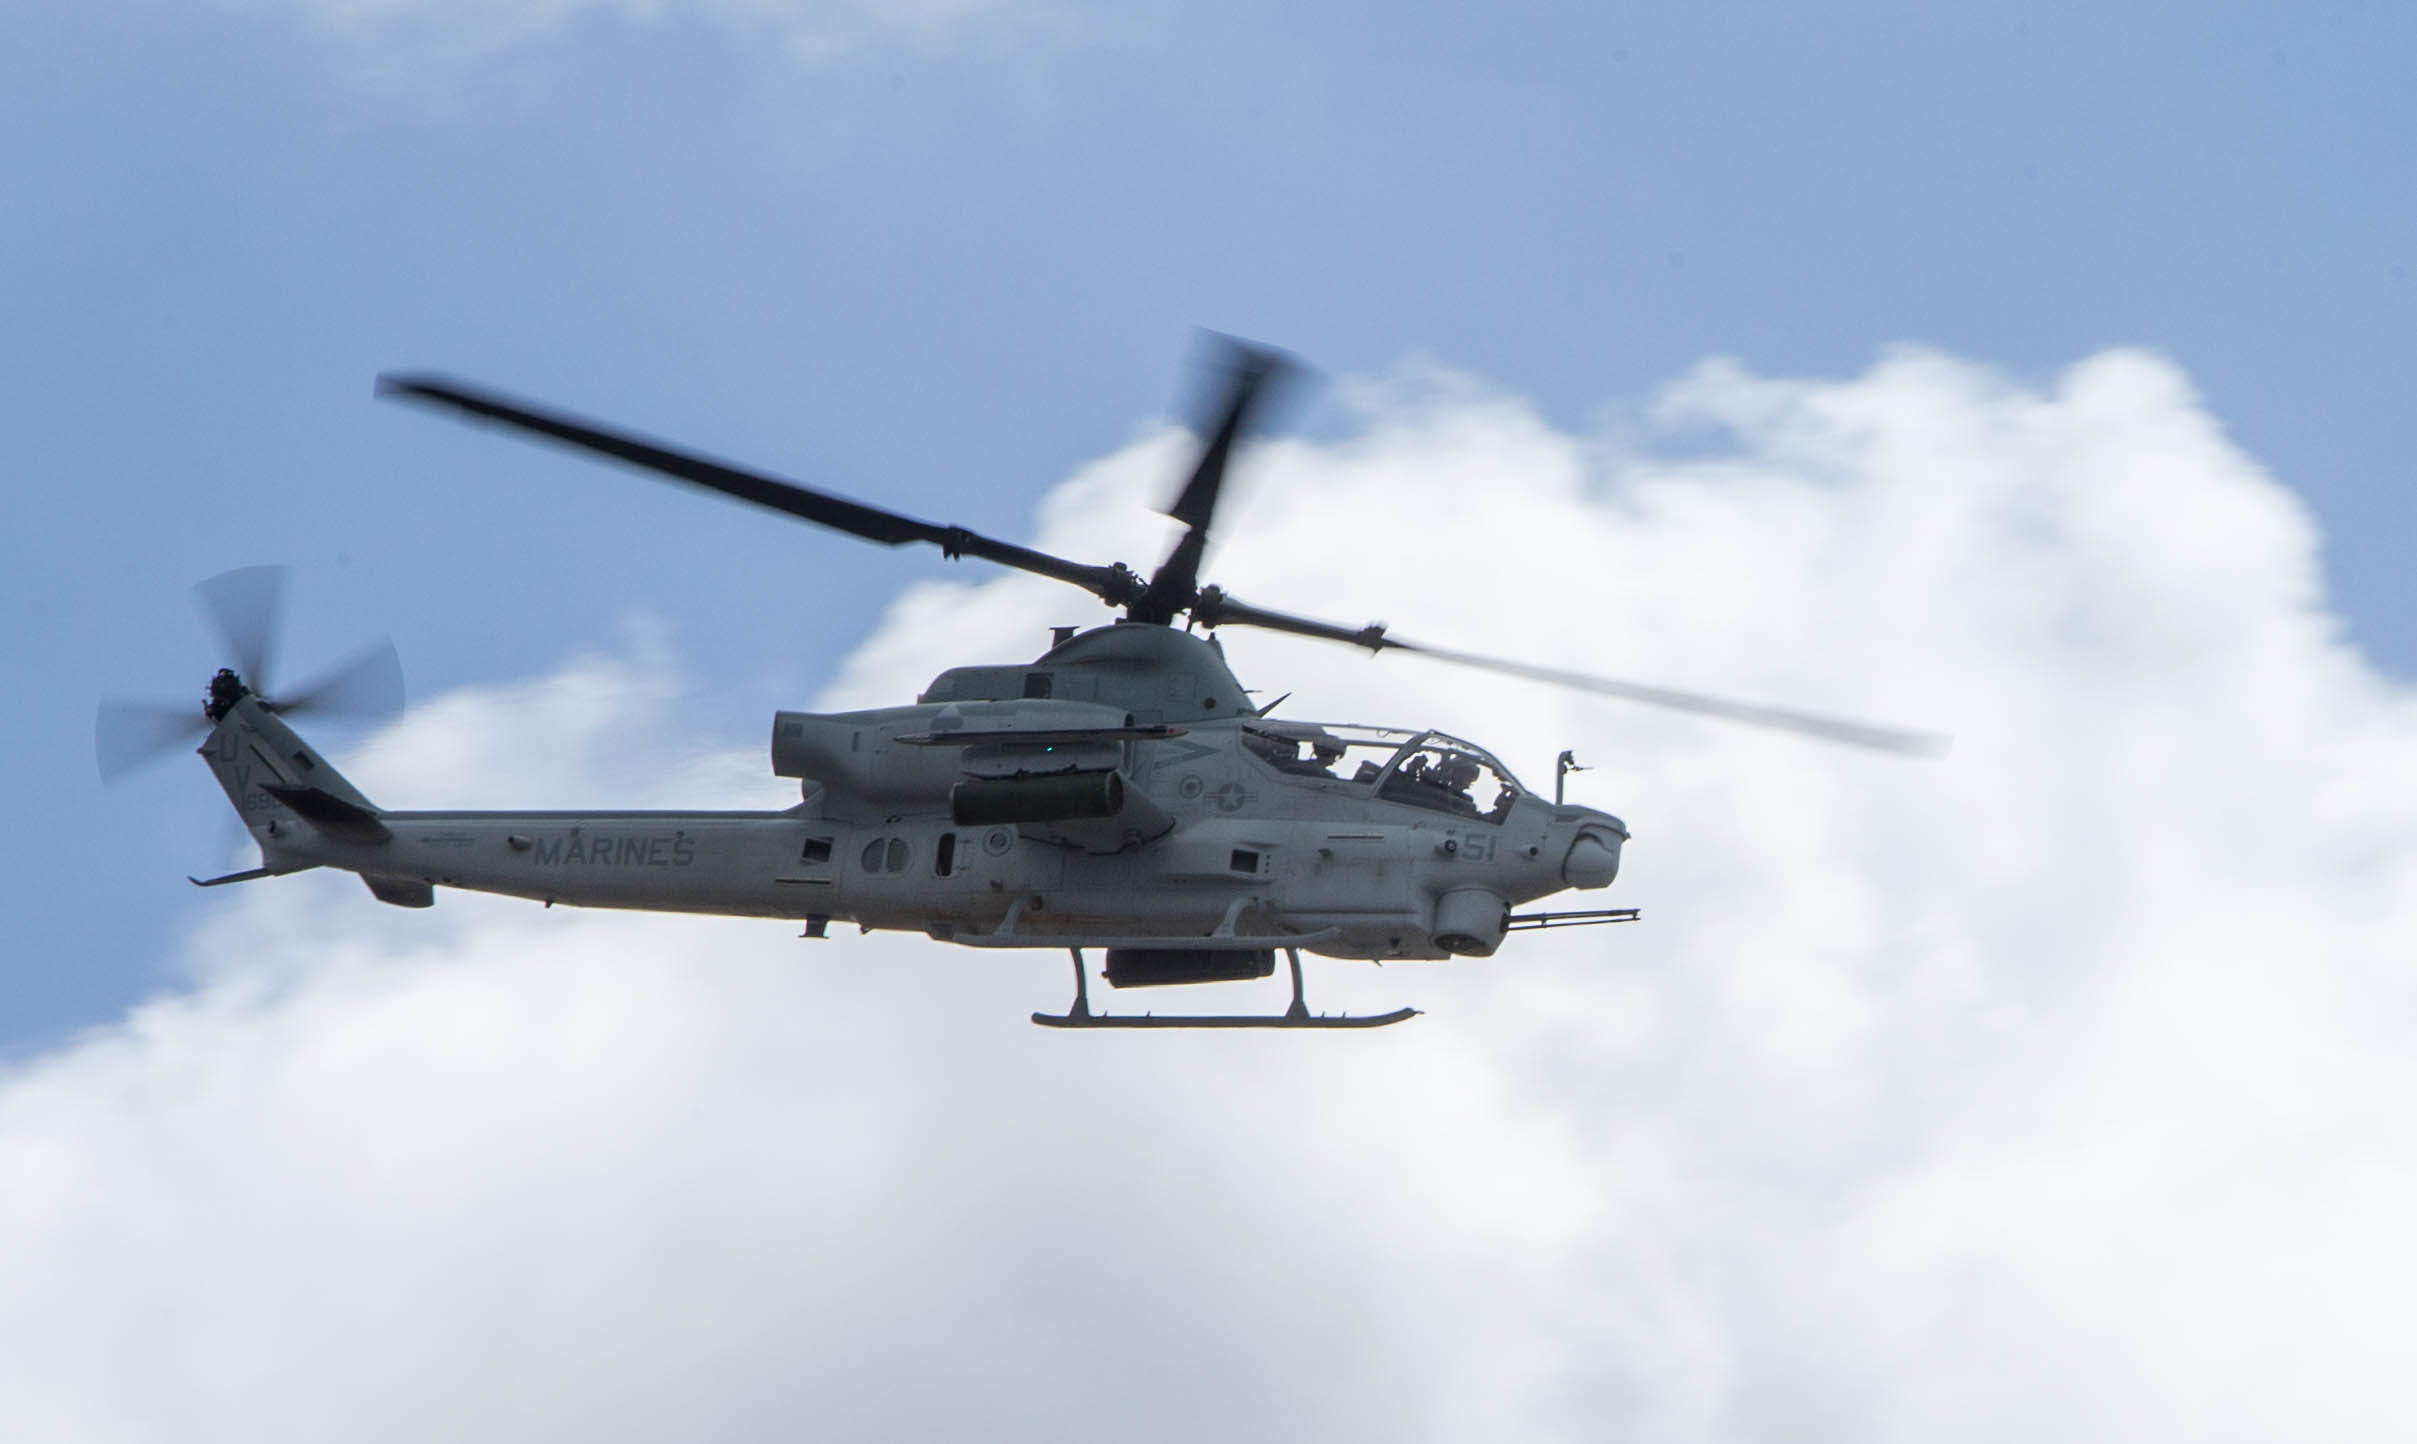 Ah-1z viper helicopter photo